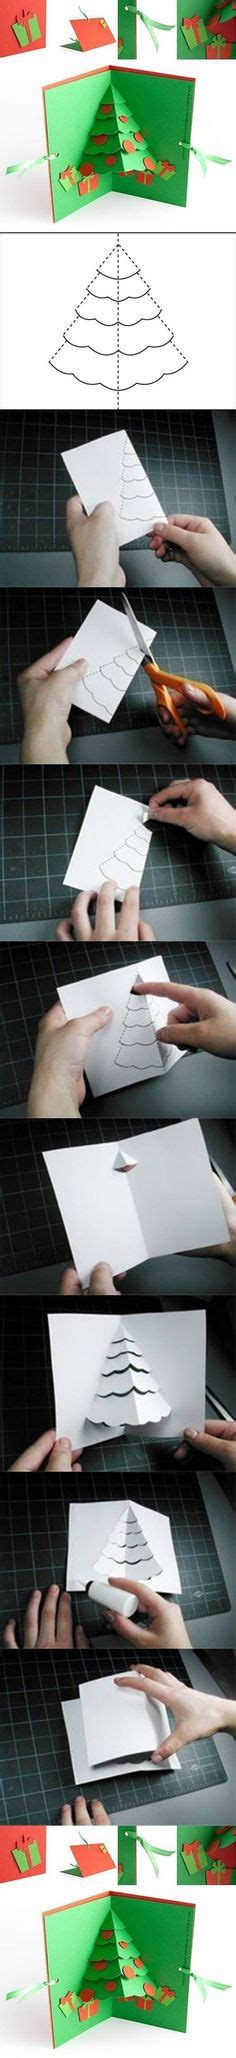 card making images card making cards homemade